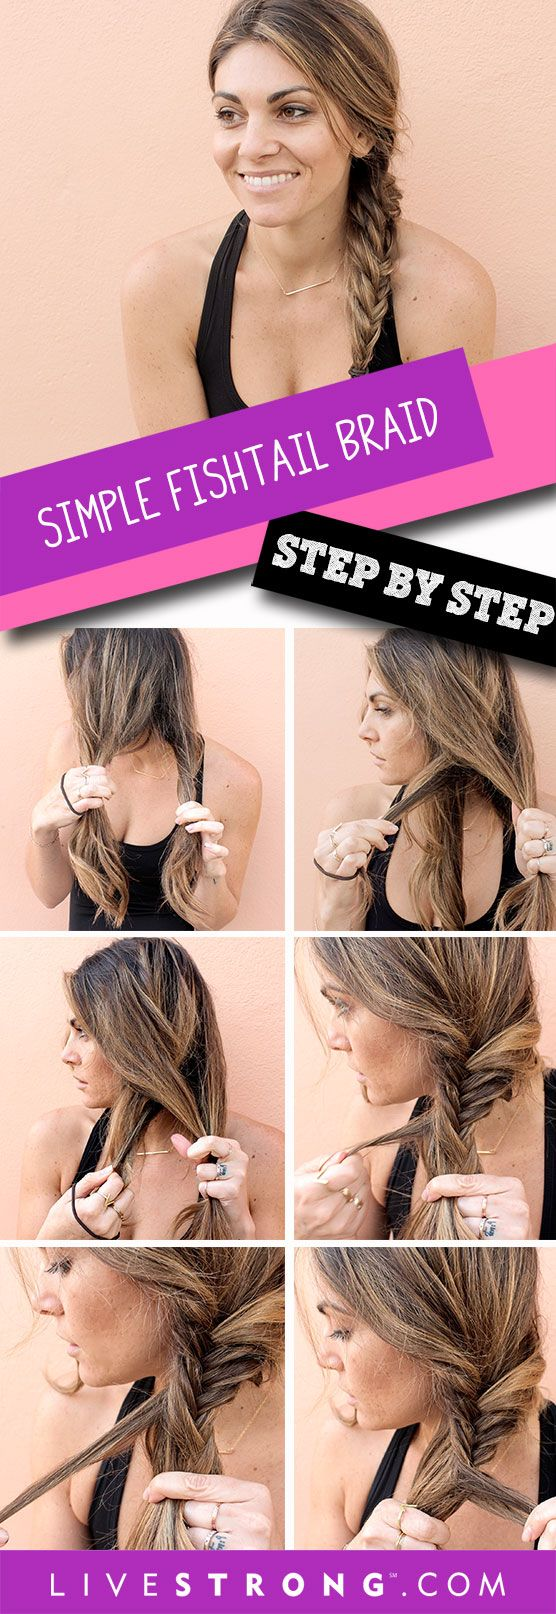 How To Rock Easy, Stylish Braids At The Gym